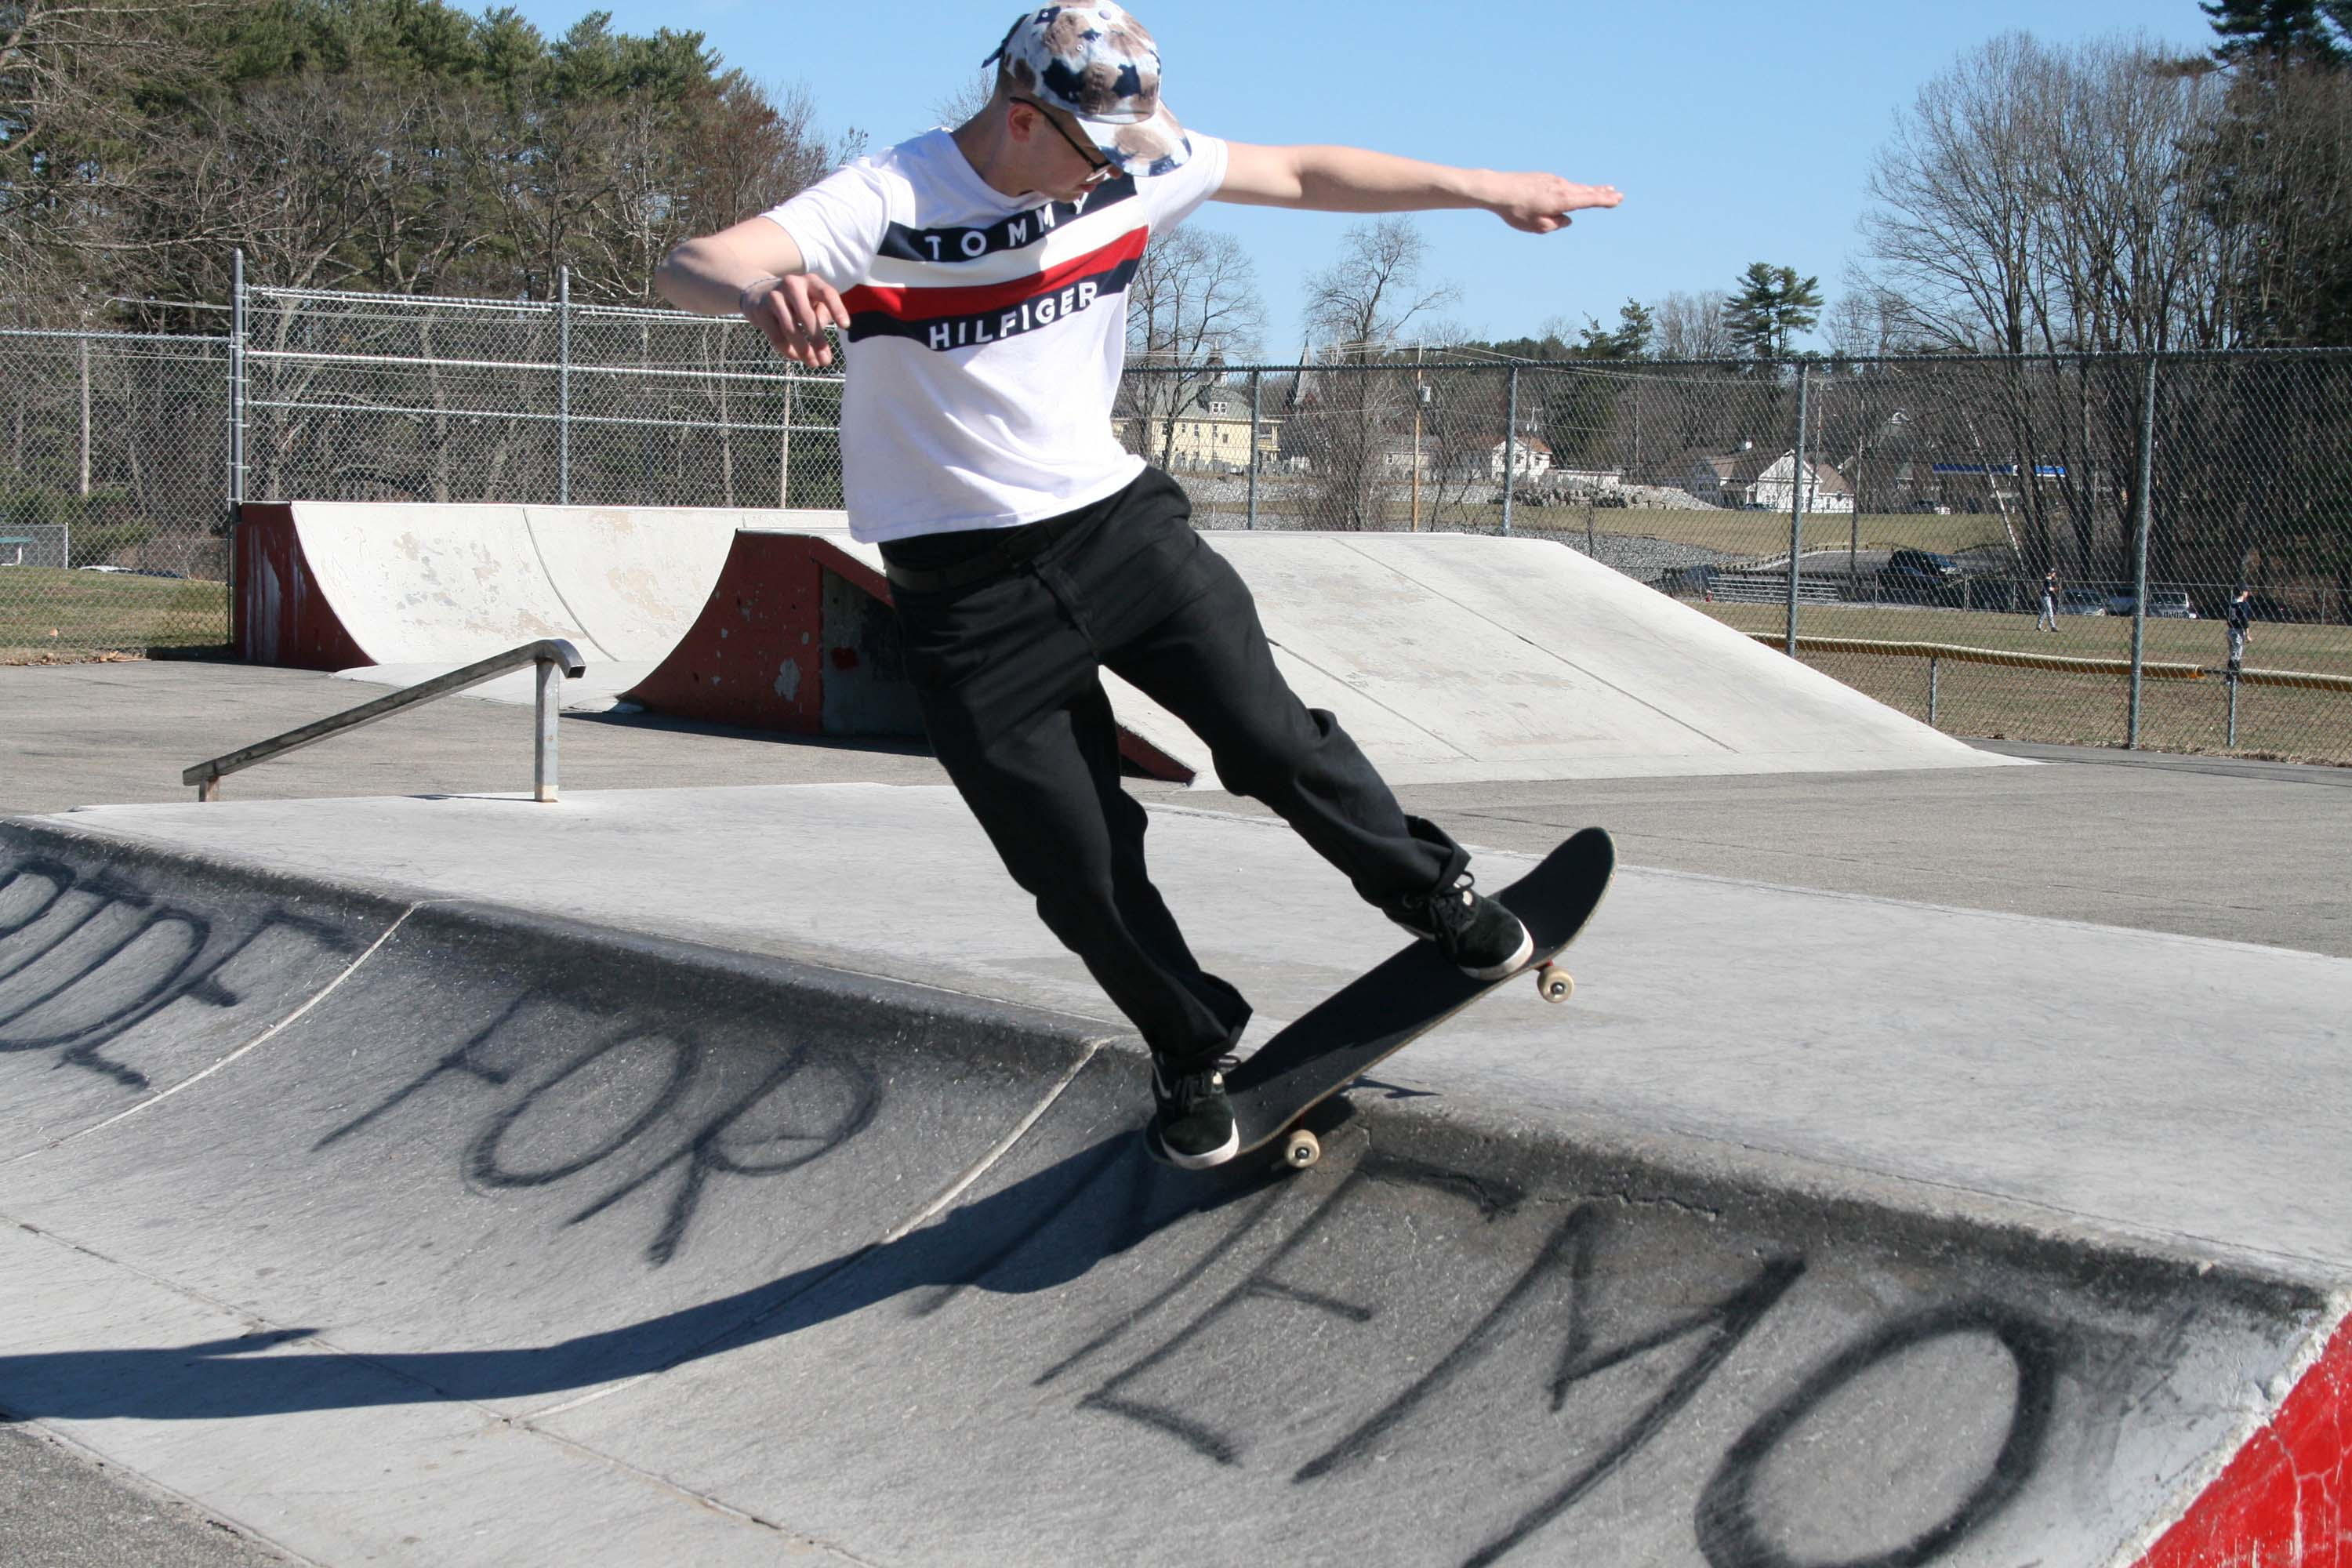 Skateboarders join forces with Recreation Department and Lions Club